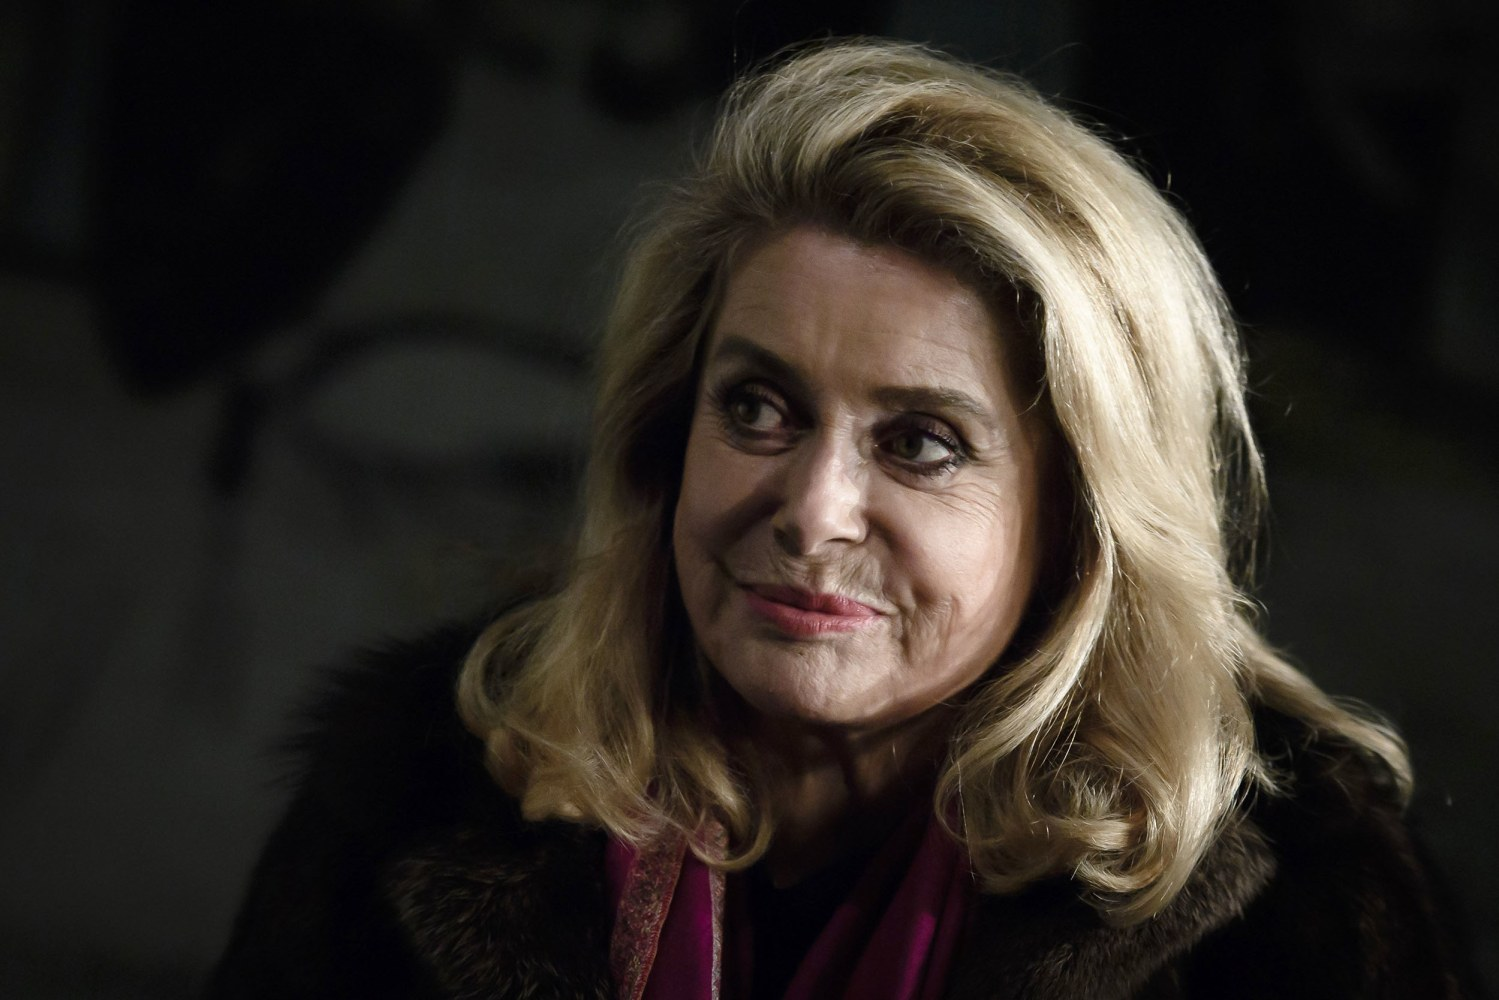 Catherine Deneuve apologises for attacking #MeToo movement in open letter